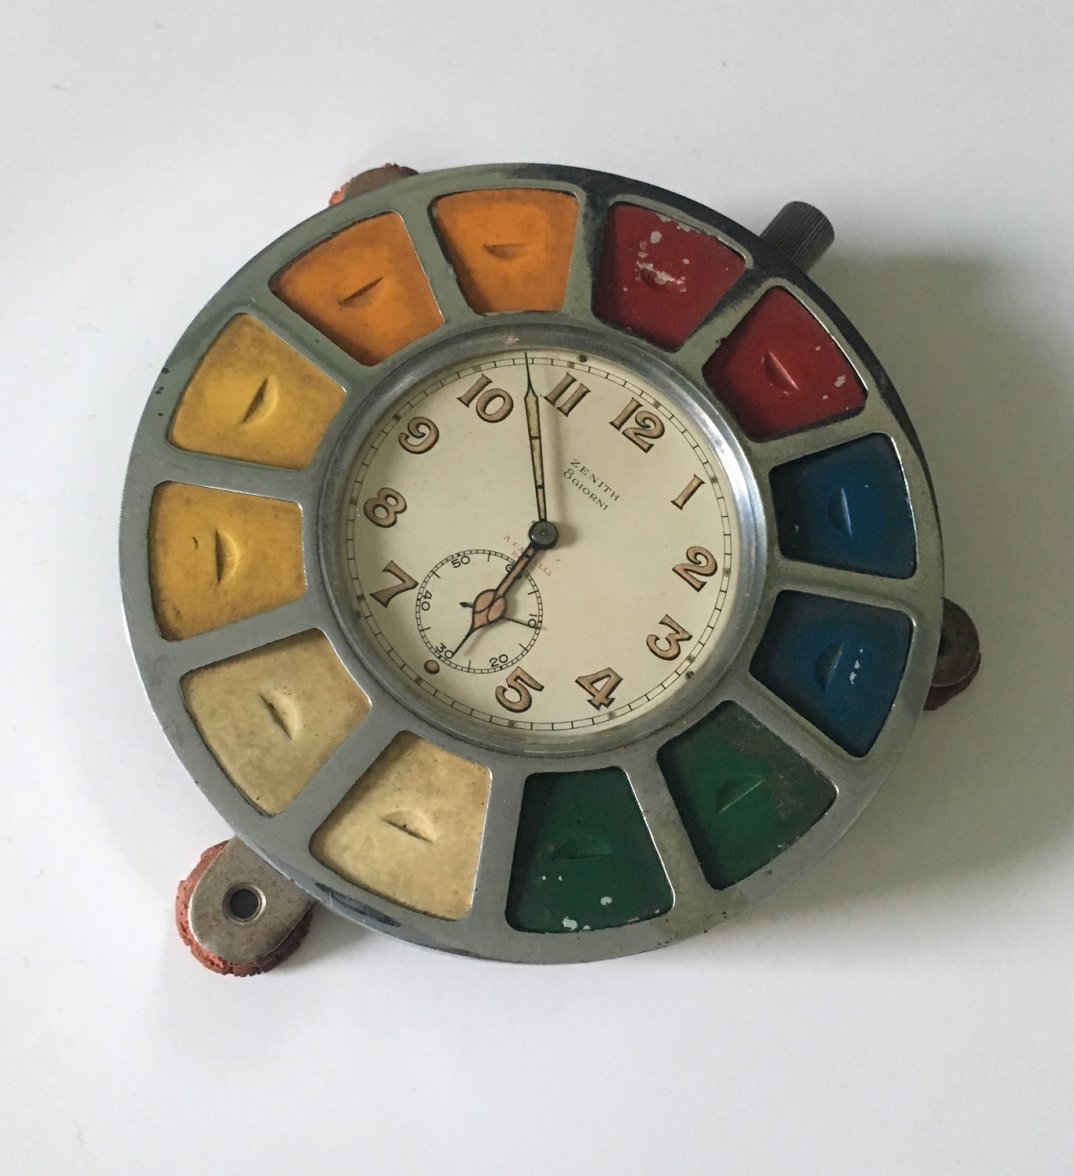 Zenith Aircraft Carrier Clock - the Cairelli Roulette